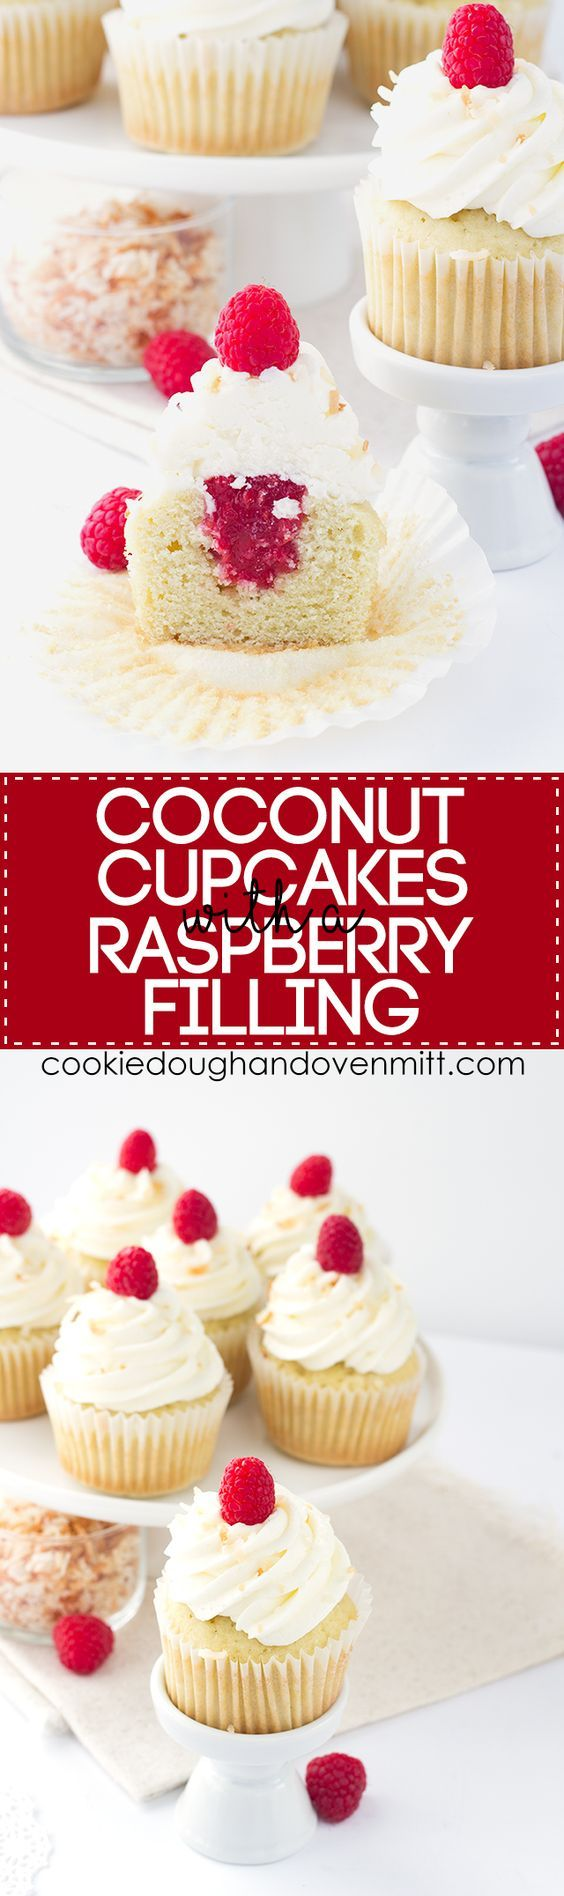 Coconut Cupcakes - coconut cupcakes stuffed with a homemade raspberry filling and topped with a high coconut frosting swirl: